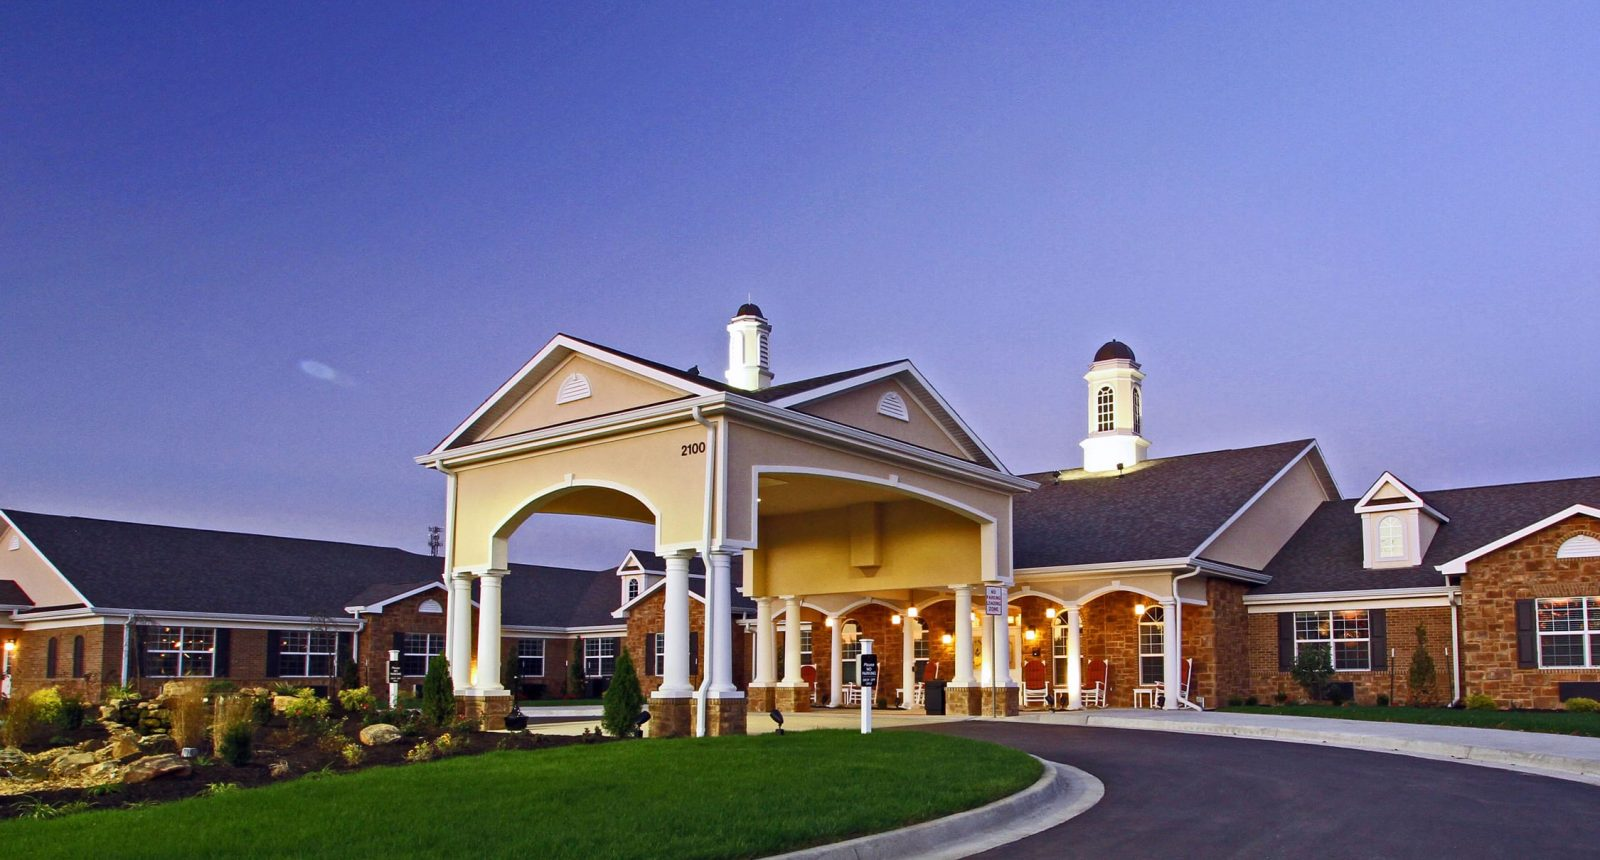 Upscale senior community with green lawn and covered entrance at dusk